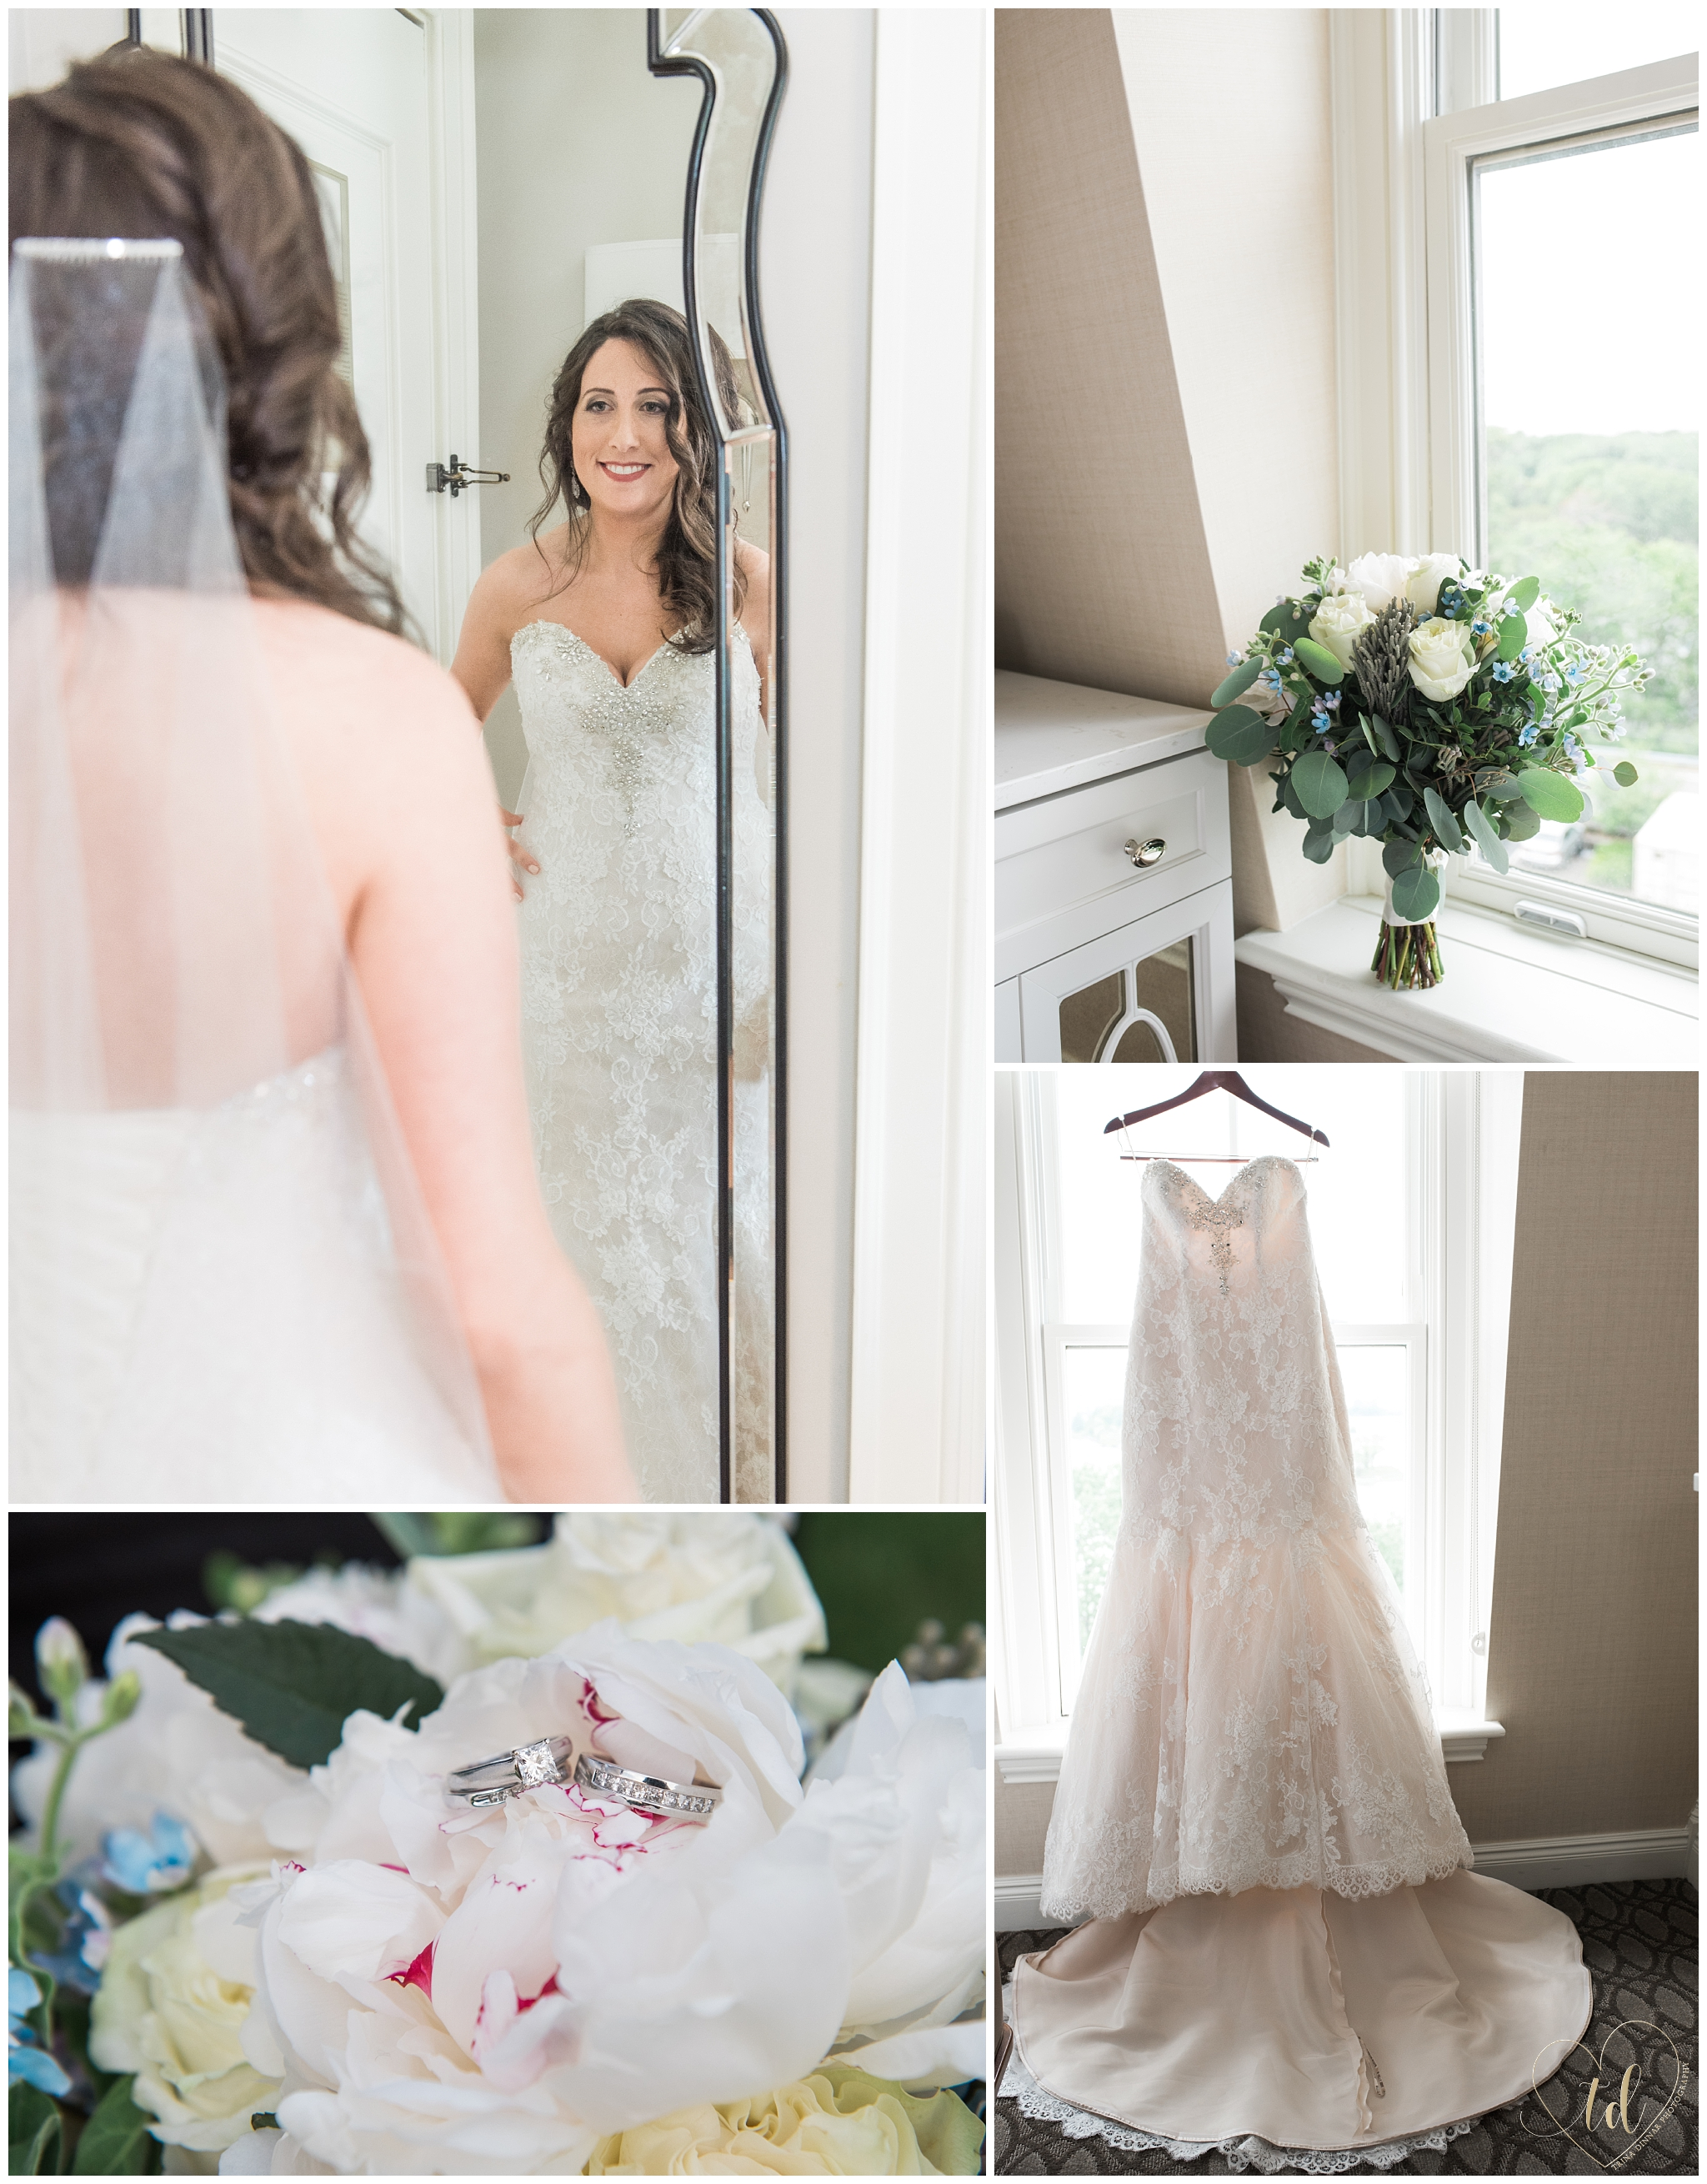 Bride prepares for her wedding at the Bridal Suite at Wentworth in New Castle, NH.